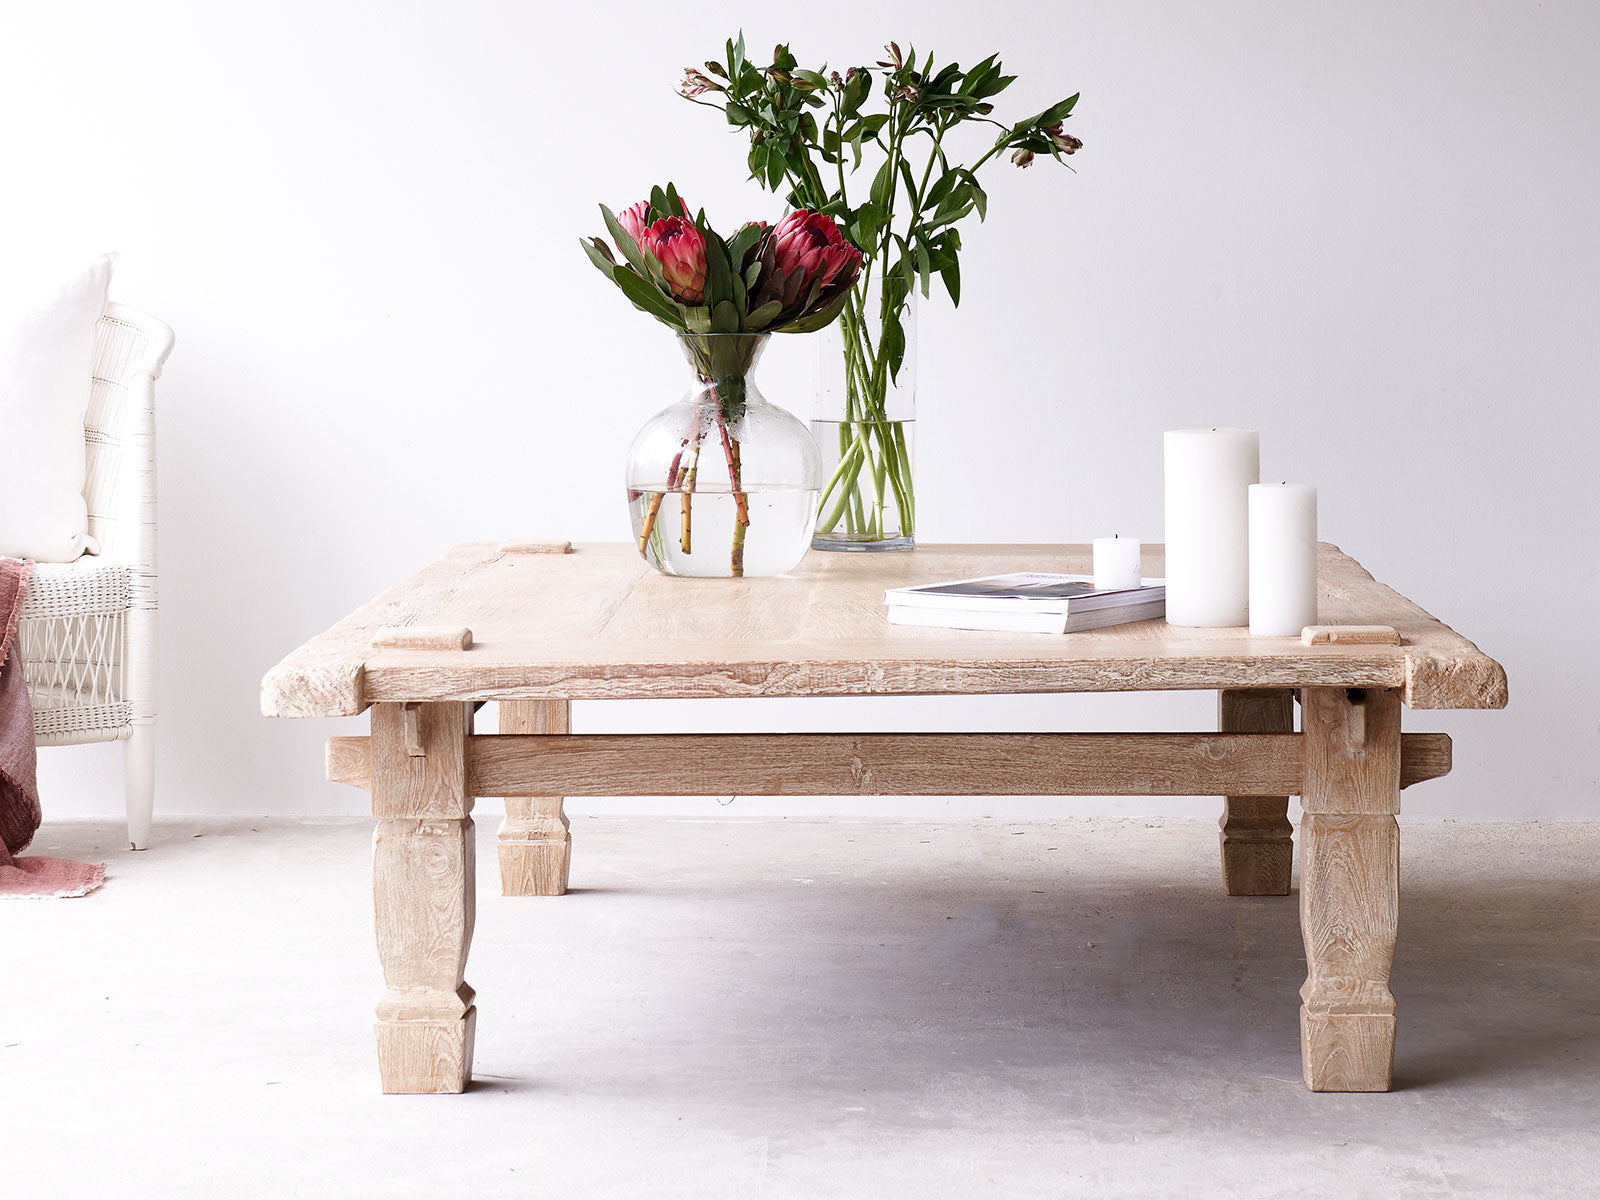 /></div><p></p><b>The Beauty of Old Teak</b> <br><br>Coffee tables from our Nomad Village range are wholly dedicated to the natural beauty of old teak wood. We love the warmth and richness of old solid teak - the way it deepens as it ages and takes on a patina as the years pass by. It feels like satin, smooth and soft to the touch. Each piece is unique and will add character and style to your living room. <br><br>We spend time carefully working with the wood, hand-crafting it to highlight the intricacies in the grain and natural knots and marks that make every piece unique. The beauty of natural materials lies in its peculiarities and imperfections. Variations in the wood grain, colour, knots and other natural characteristics are inherent. These are far from flaws, but are an intrinsic part of its character. We believe that these authentic imperfections contribute to the charm of our products.  <br><br>No veneered MDF has been used on this product. All the wood used for this dining table top is solid Teak timber. This makes the product far stronger, heavier and of a much higher quality. Solid teak timber is relatively easy to repair should it get chipped or damaged unlike a veneered surface. The whitewash also helps conceal marks and stains, making your dining table look great for many years.<p></p><div class=